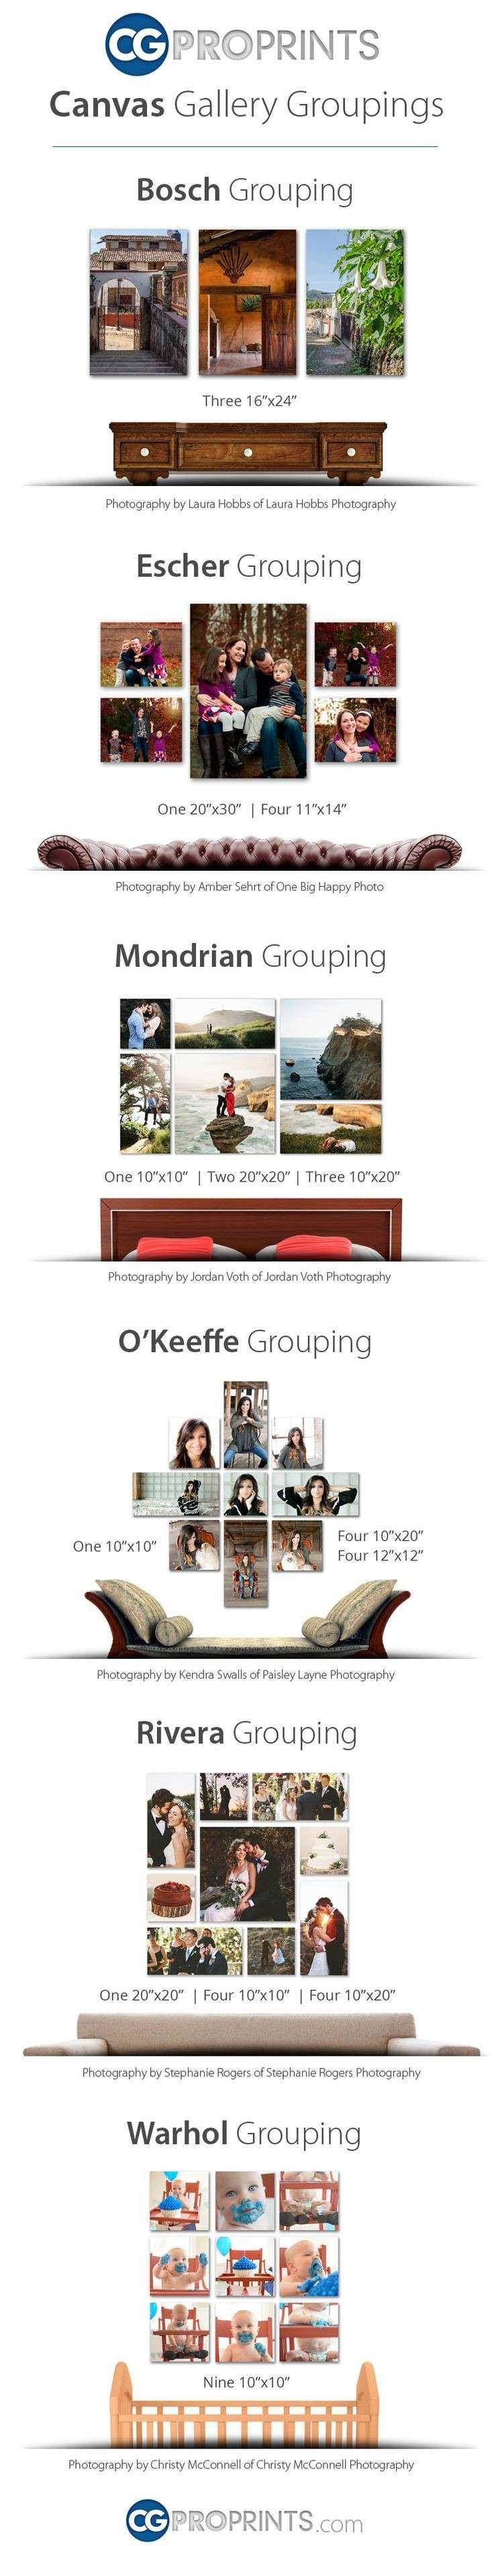 61 best Canvas Groupings images on Pinterest